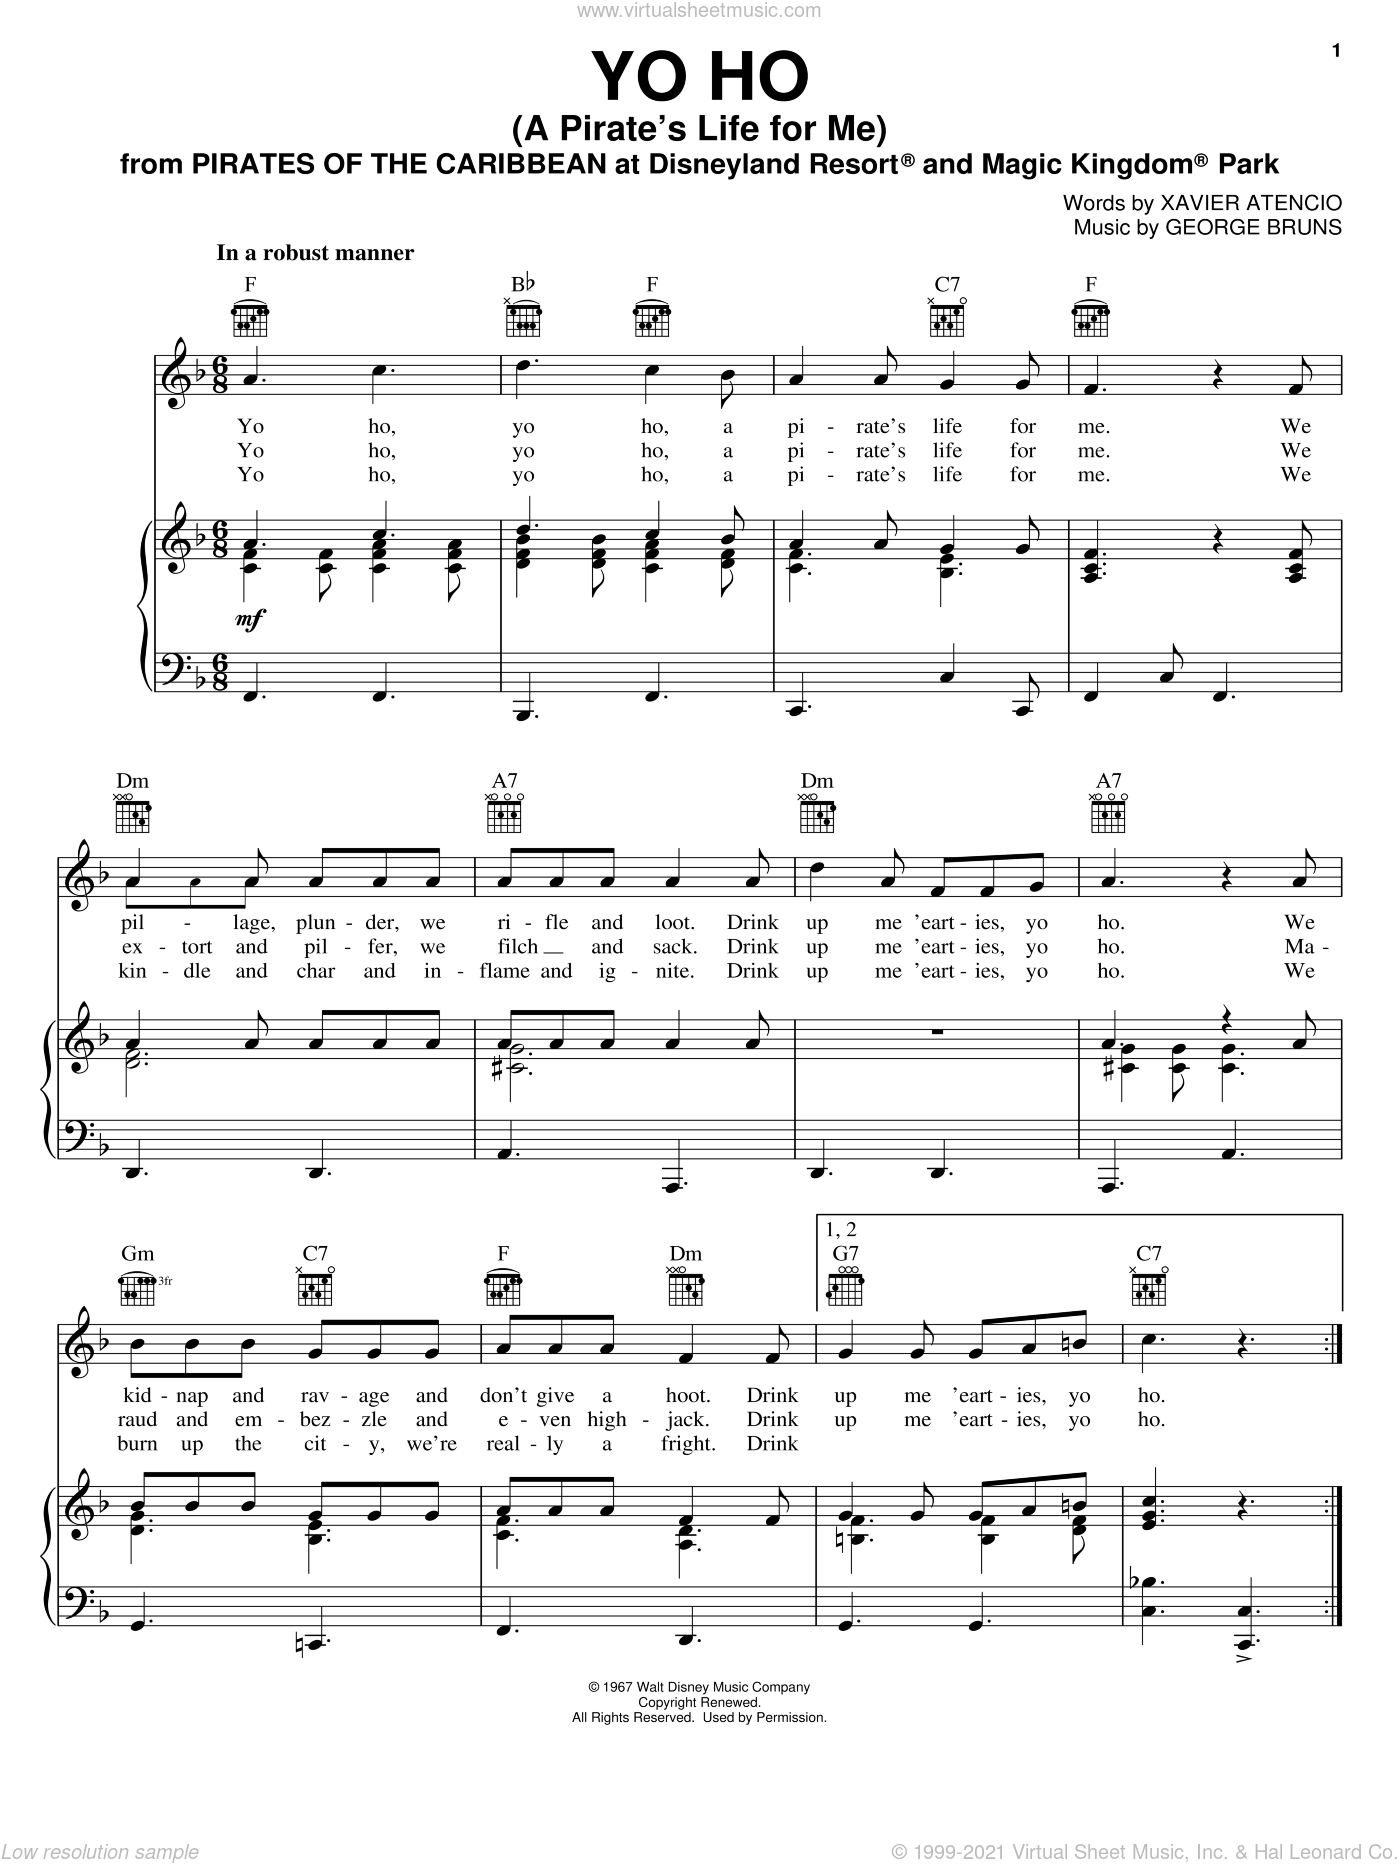 Yo Ho (A Pirate's Life For Me) sheet music for voice, piano or guitar by Xavier Atencio and George Bruns, intermediate voice, piano or guitar. Score Image Preview.